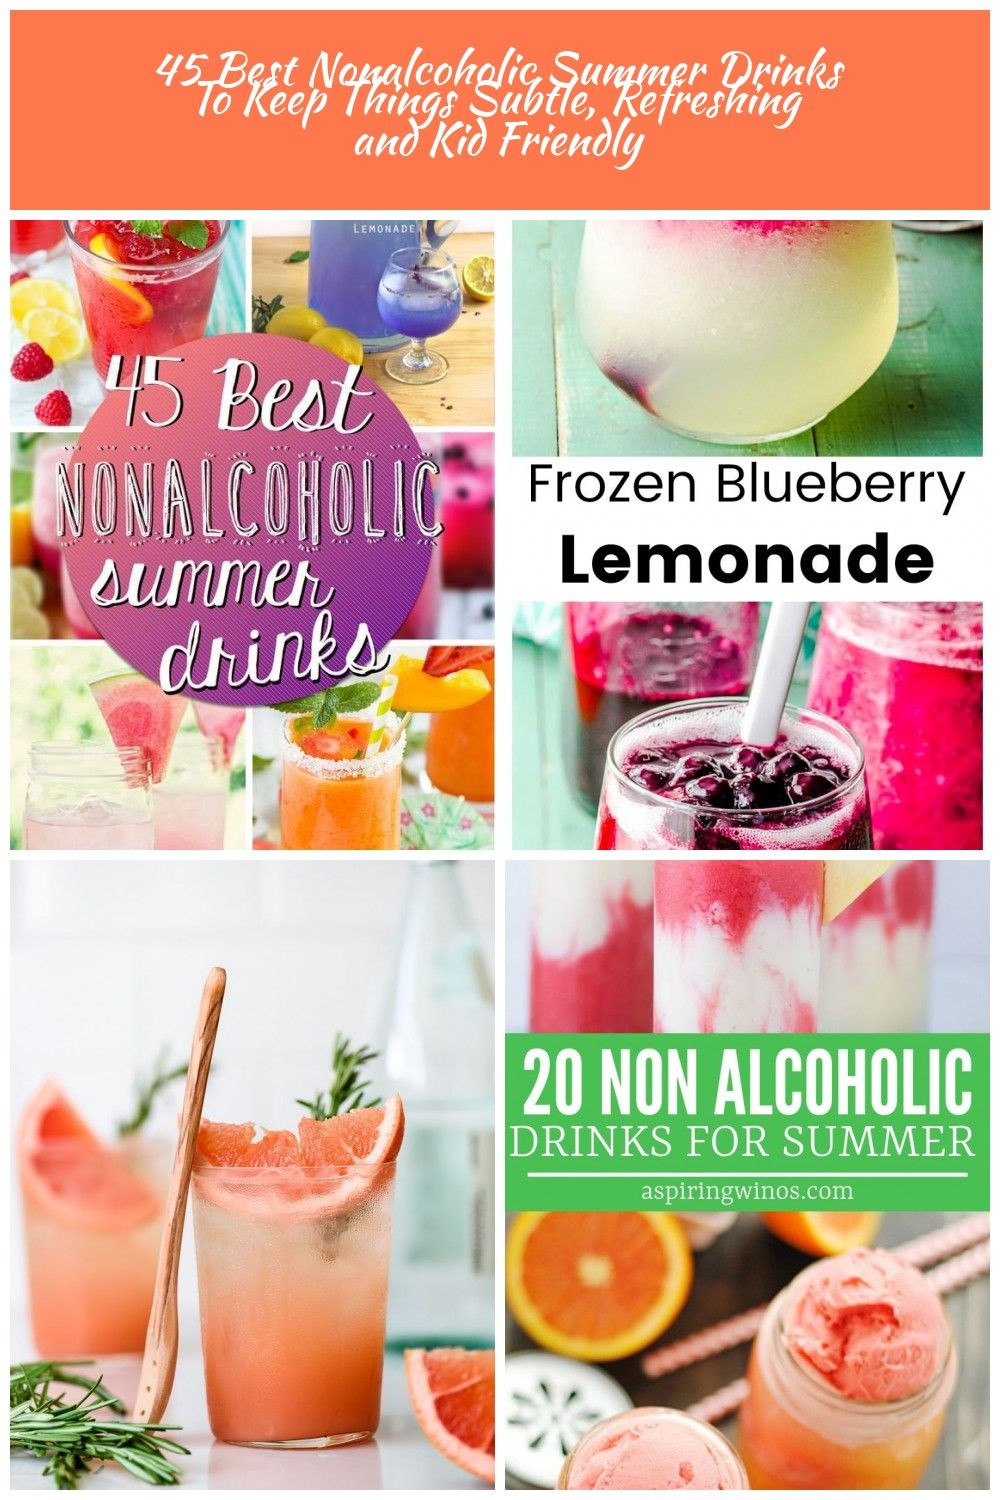 Summer drink 45 Best Nonalcoholic Summer Drinks To Keep Things Subtle, Refreshing and Kid Friendly #nonalcoholicsummerdrinks